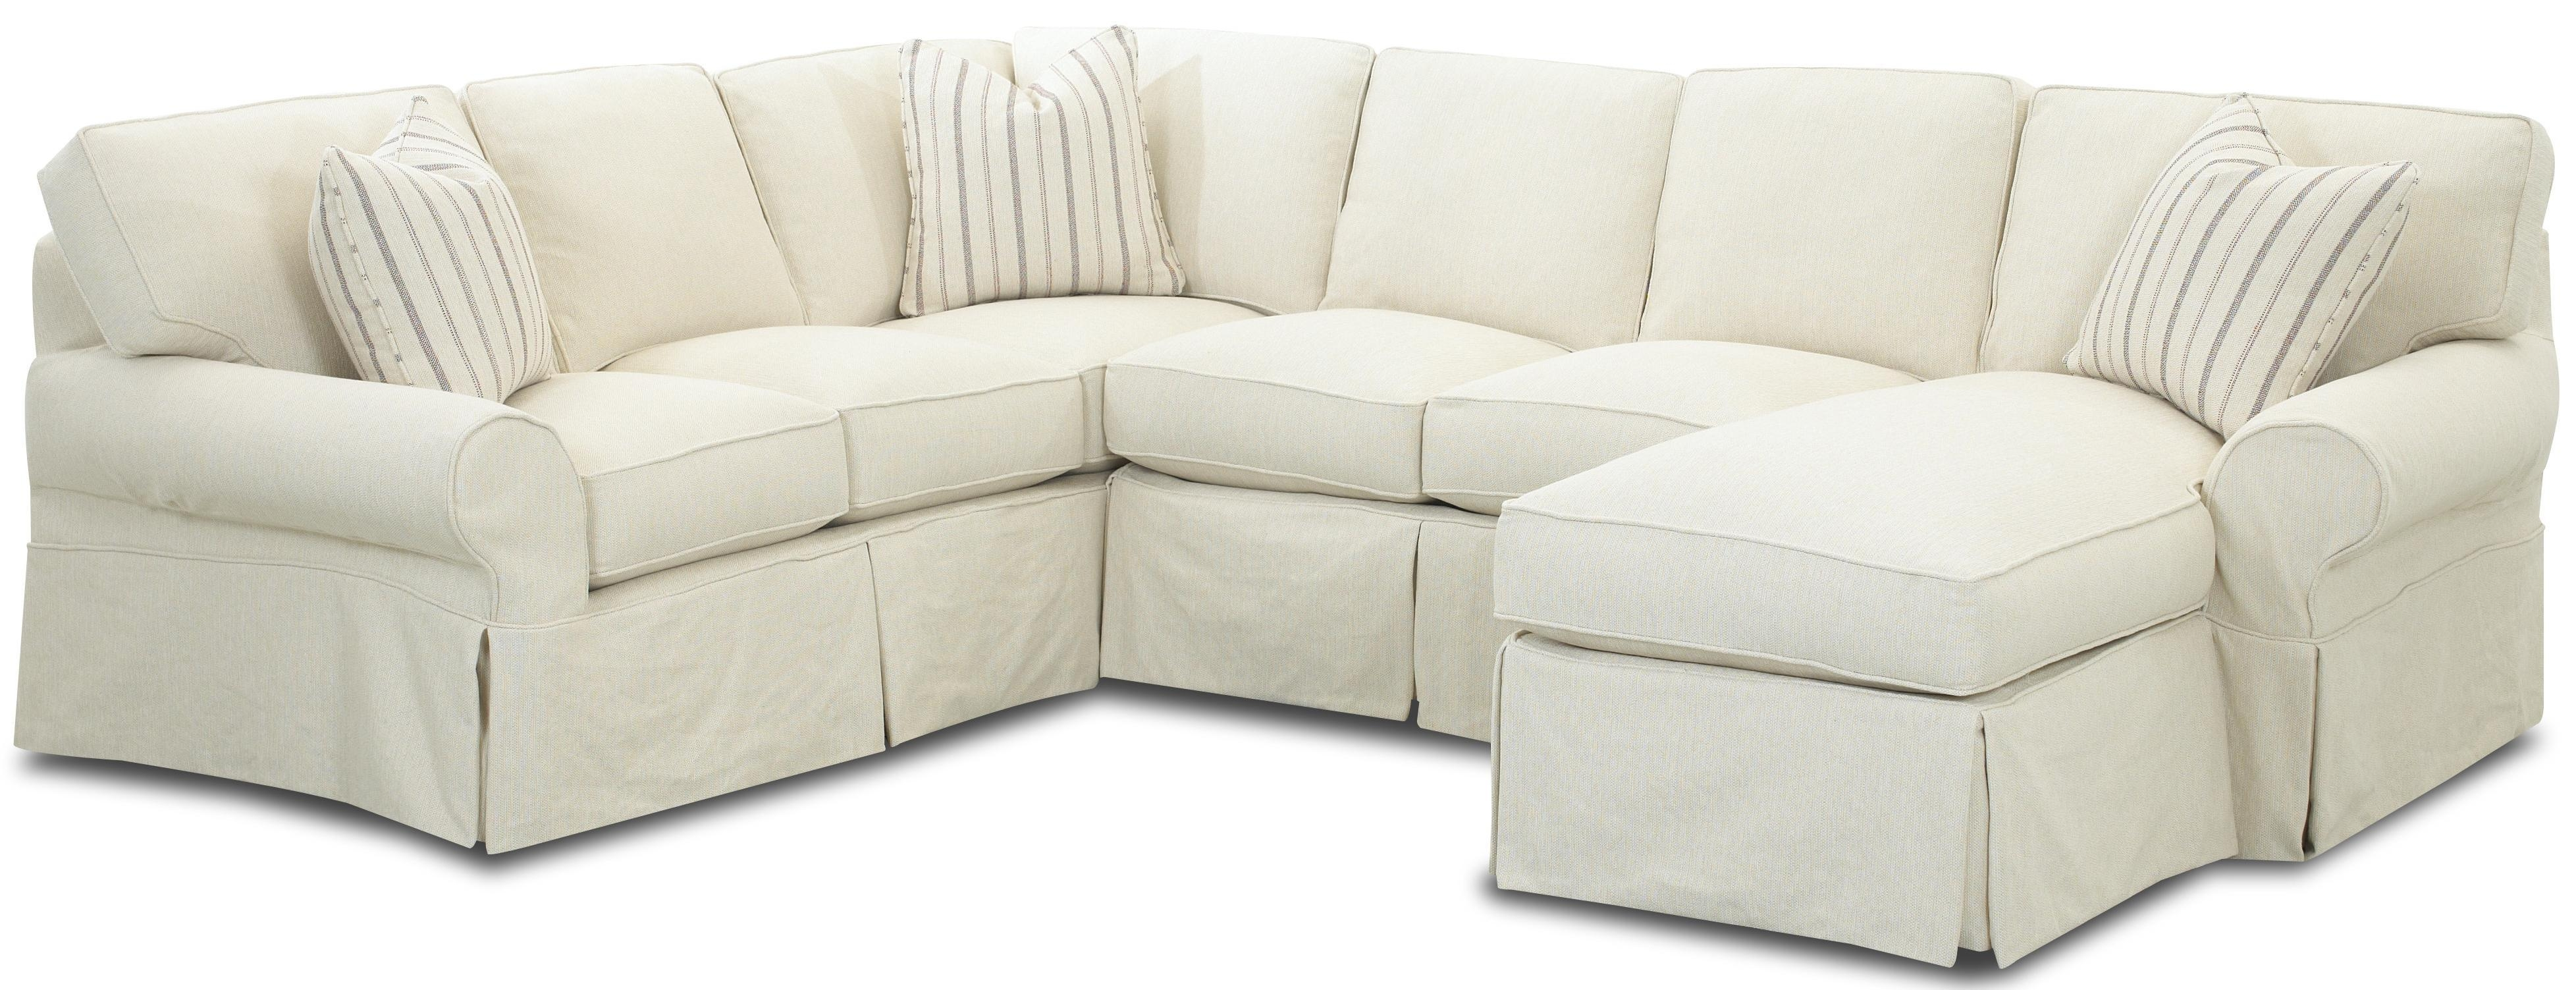 Sofas Center : Chaise Lounge Sofa Covers Unusual Picture Design S Regarding Slipcovers For Chaise Lounge Sofas (View 11 of 20)